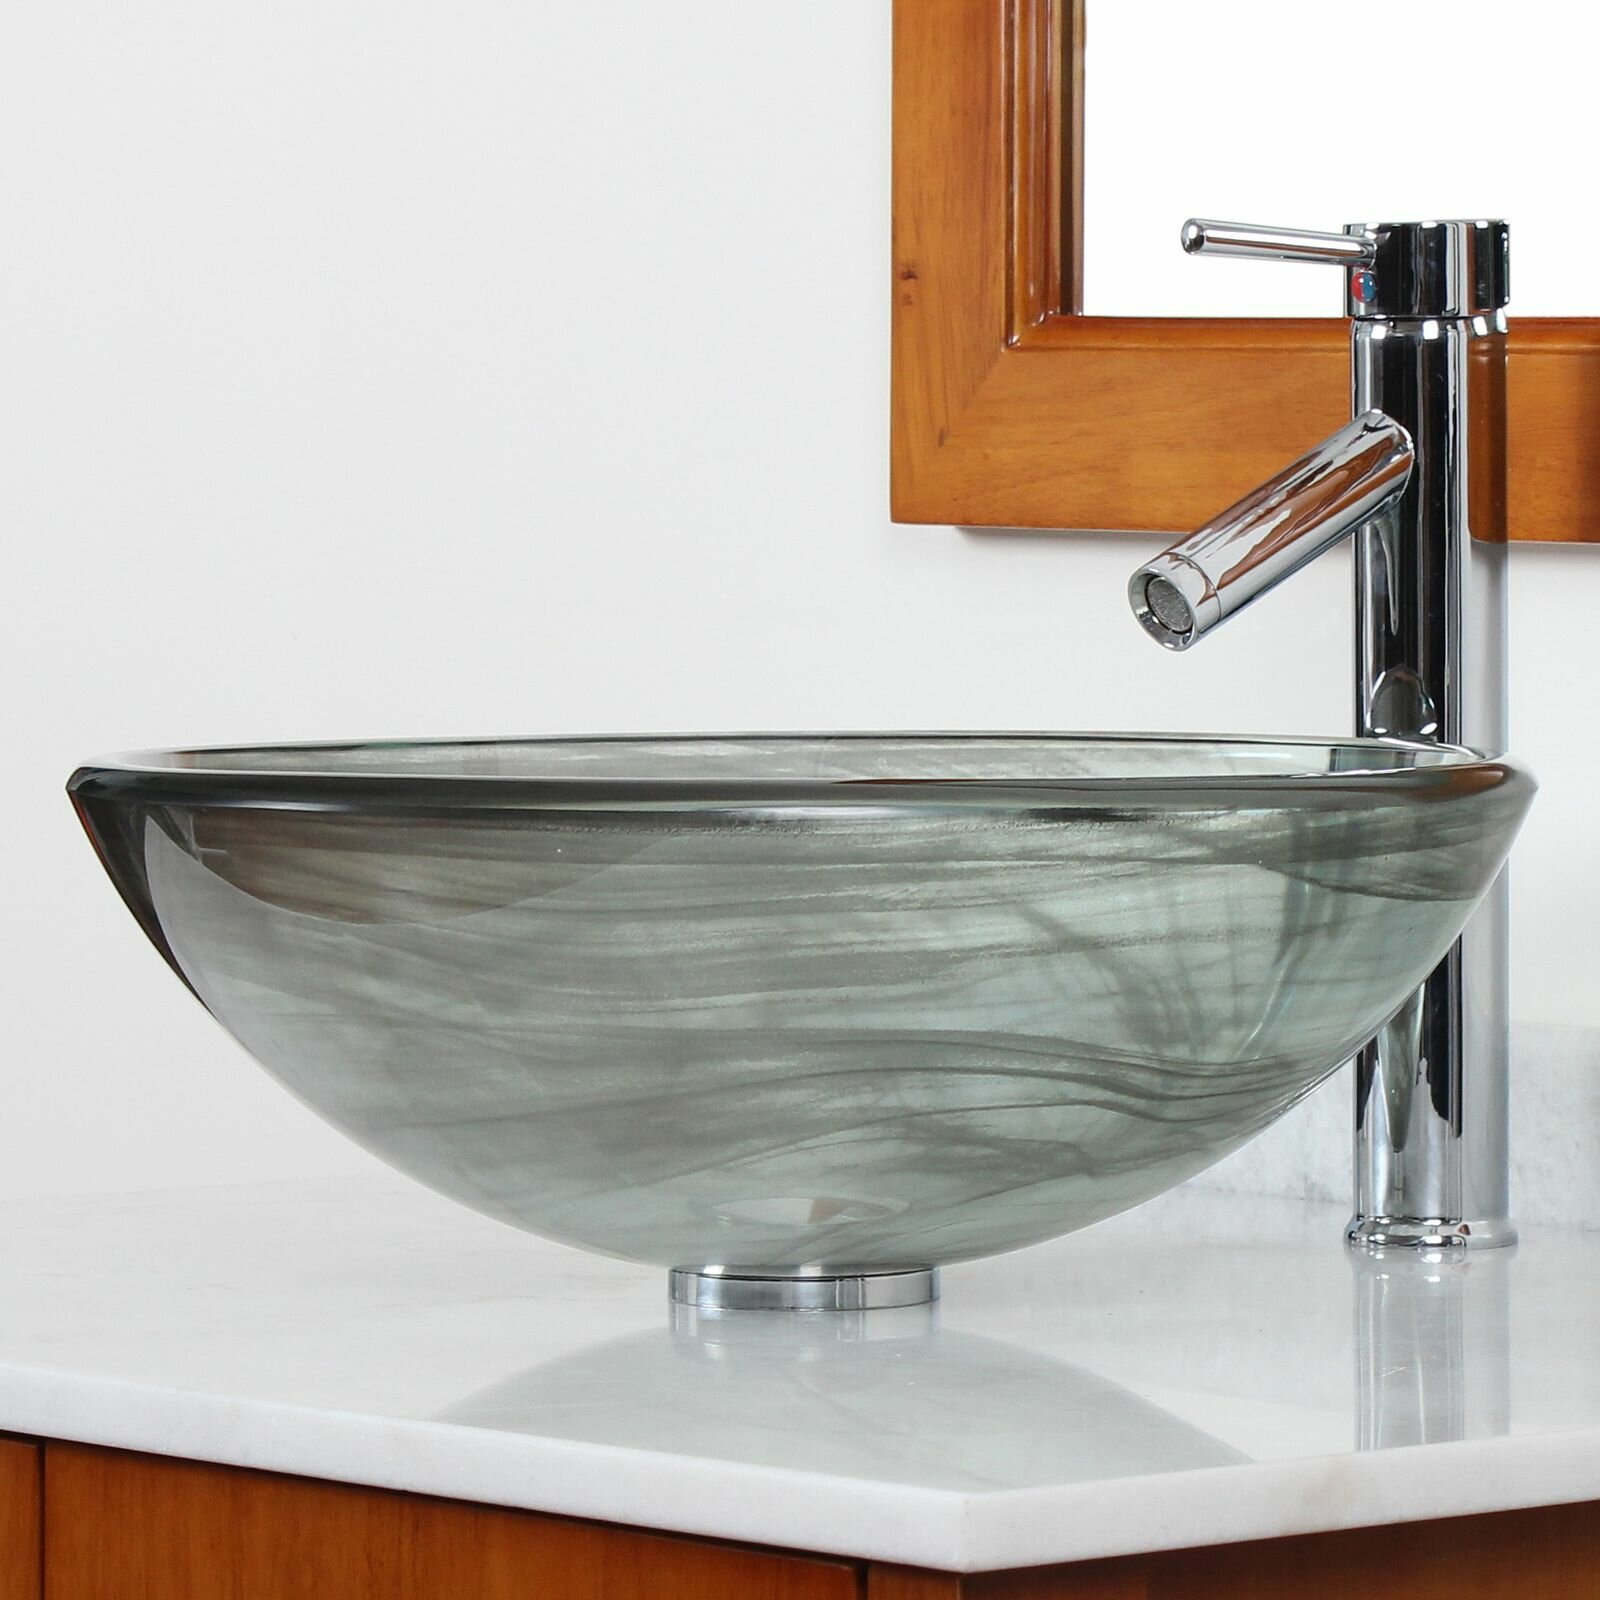 Glass Bowl Sink Bathroom : ... Layered Tempered Glass Bowl Vessel Bathroom Sink & Reviews Wayfair